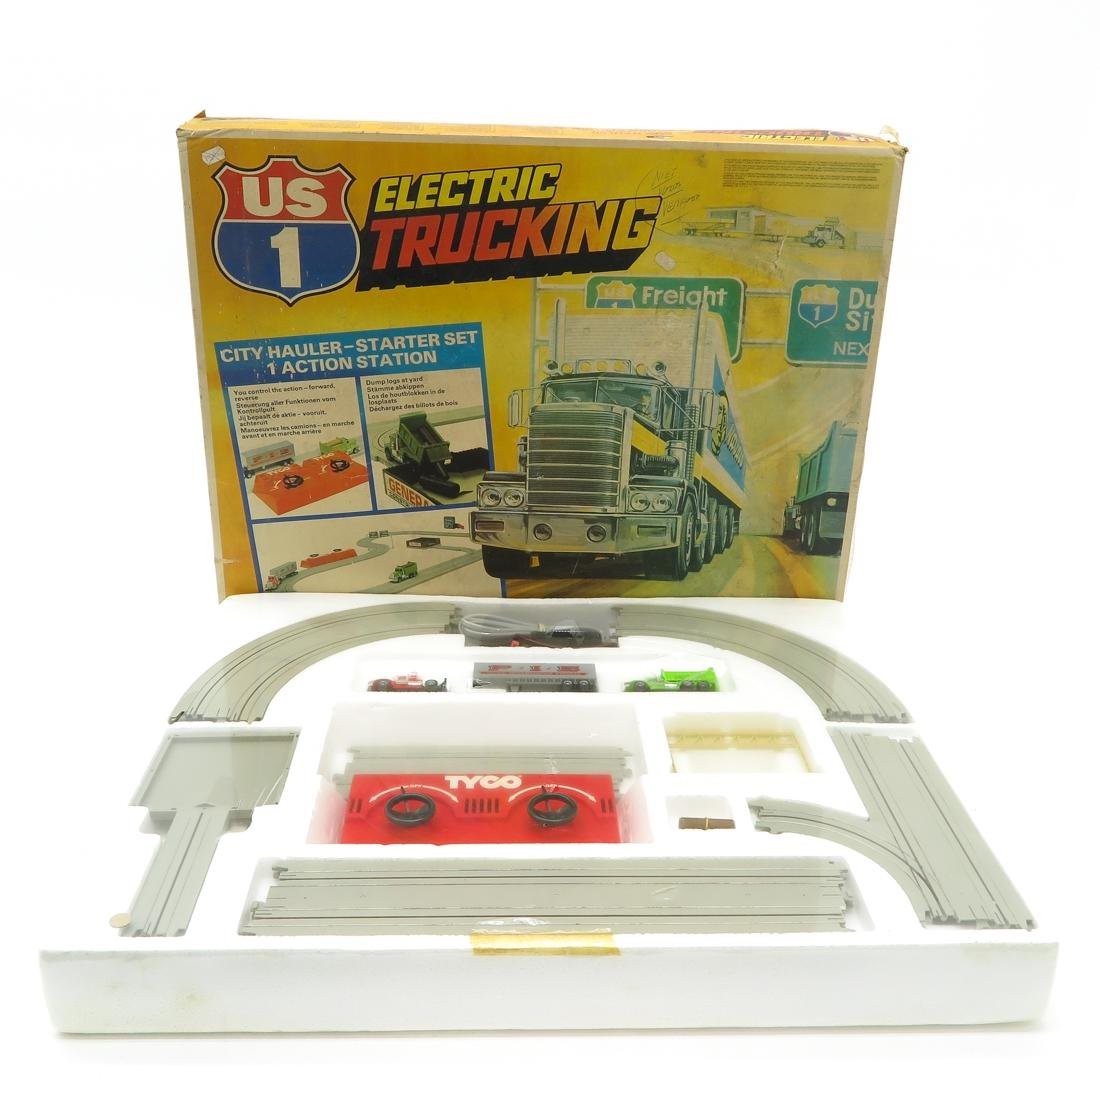 Vintage US 1 Electric Trucking Set by Tyco